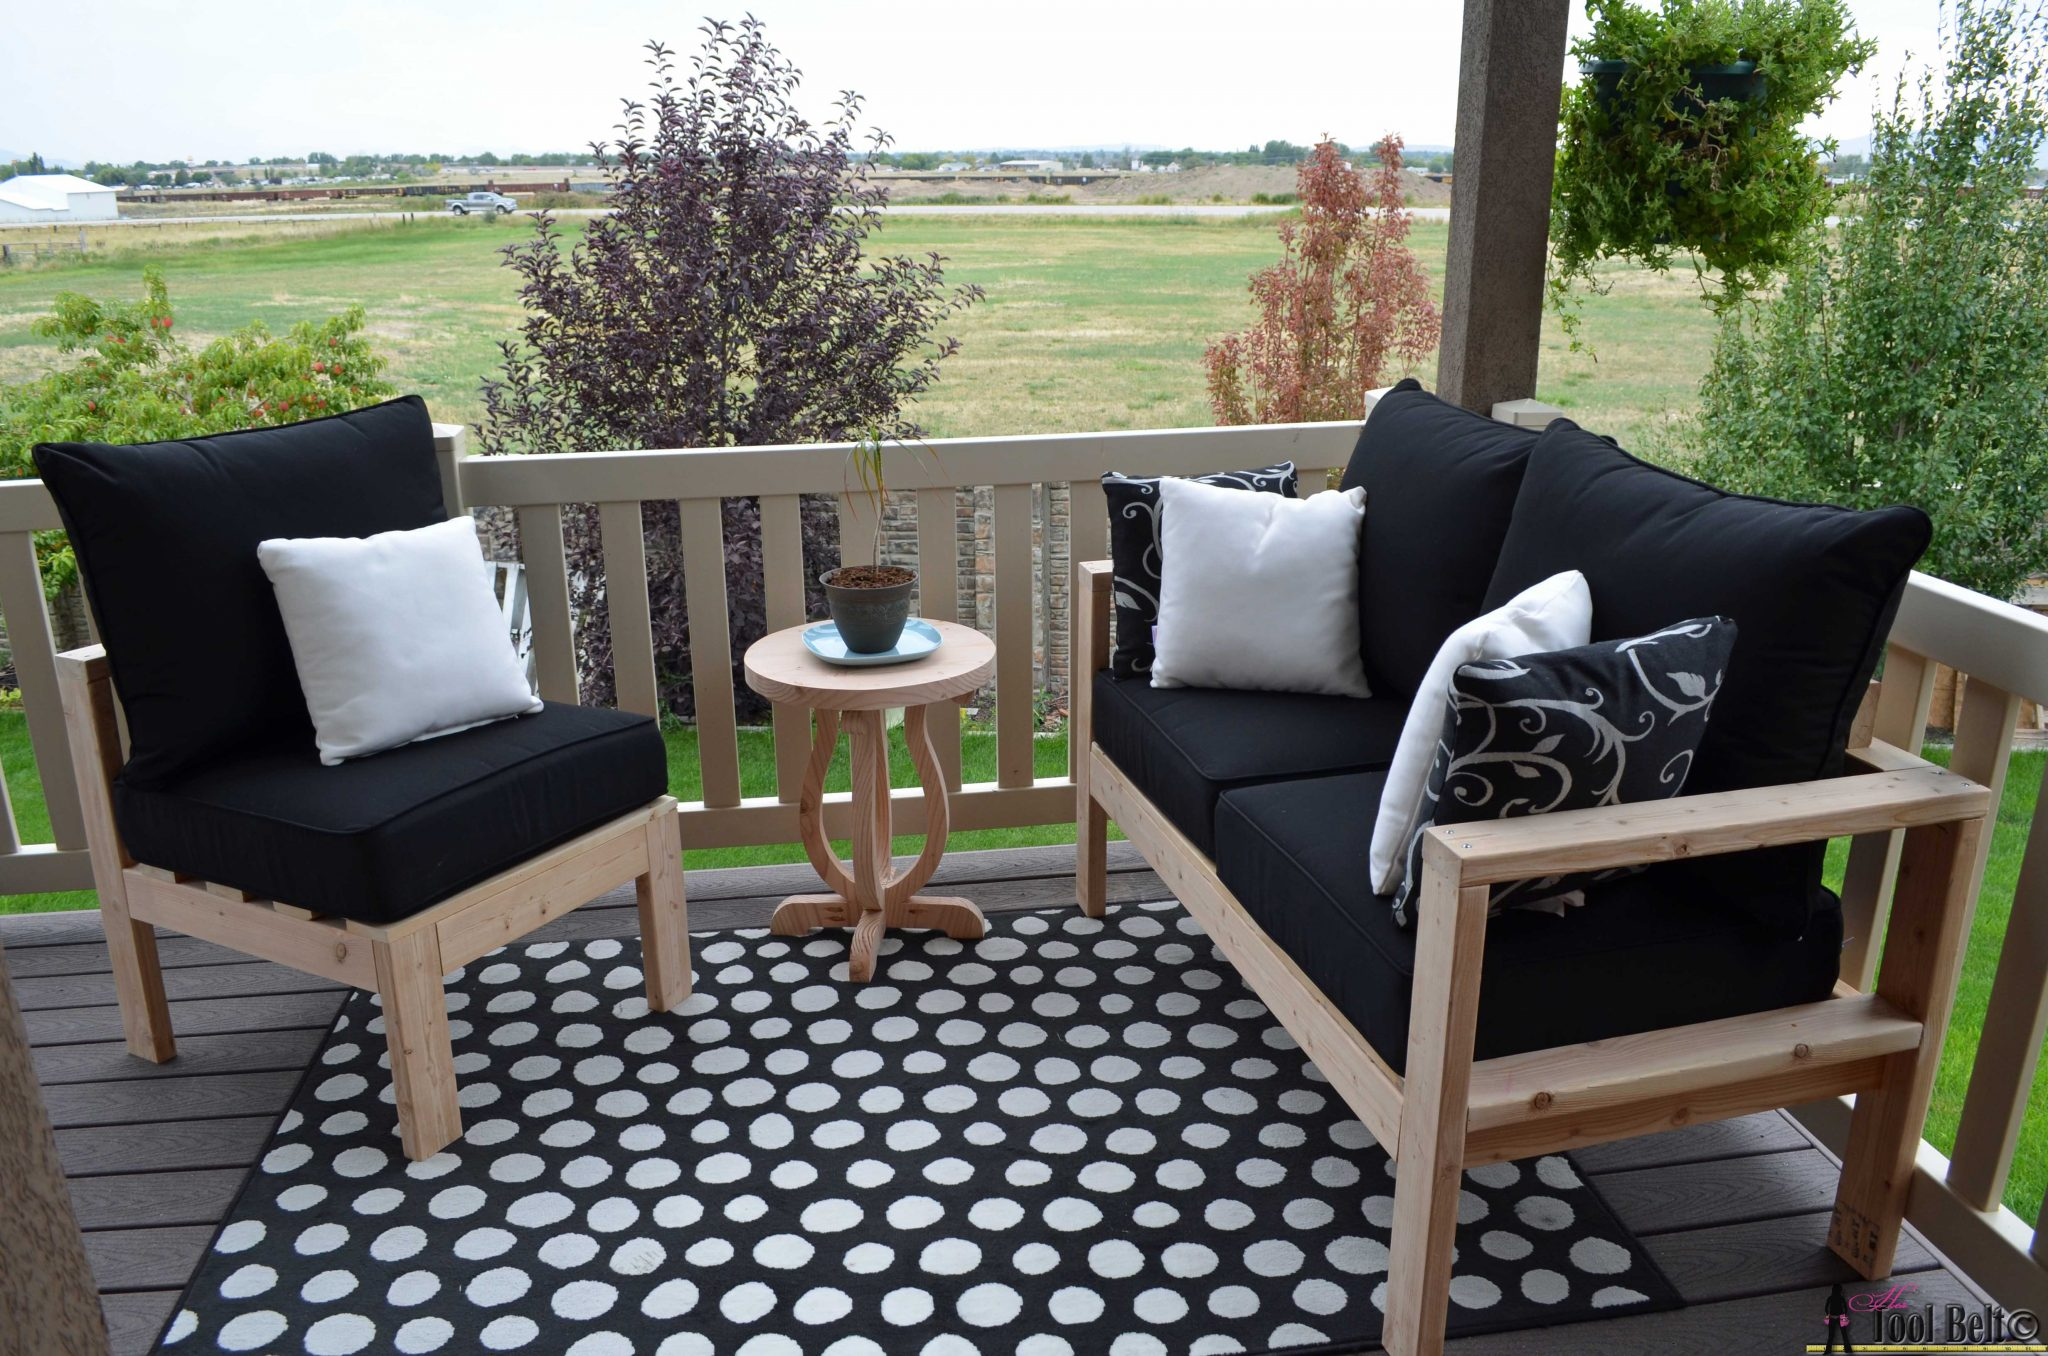 Build Your Own Outdoor Seating From 2x4u0027s With These Free And Easy Plans On  Hertoolbelt.